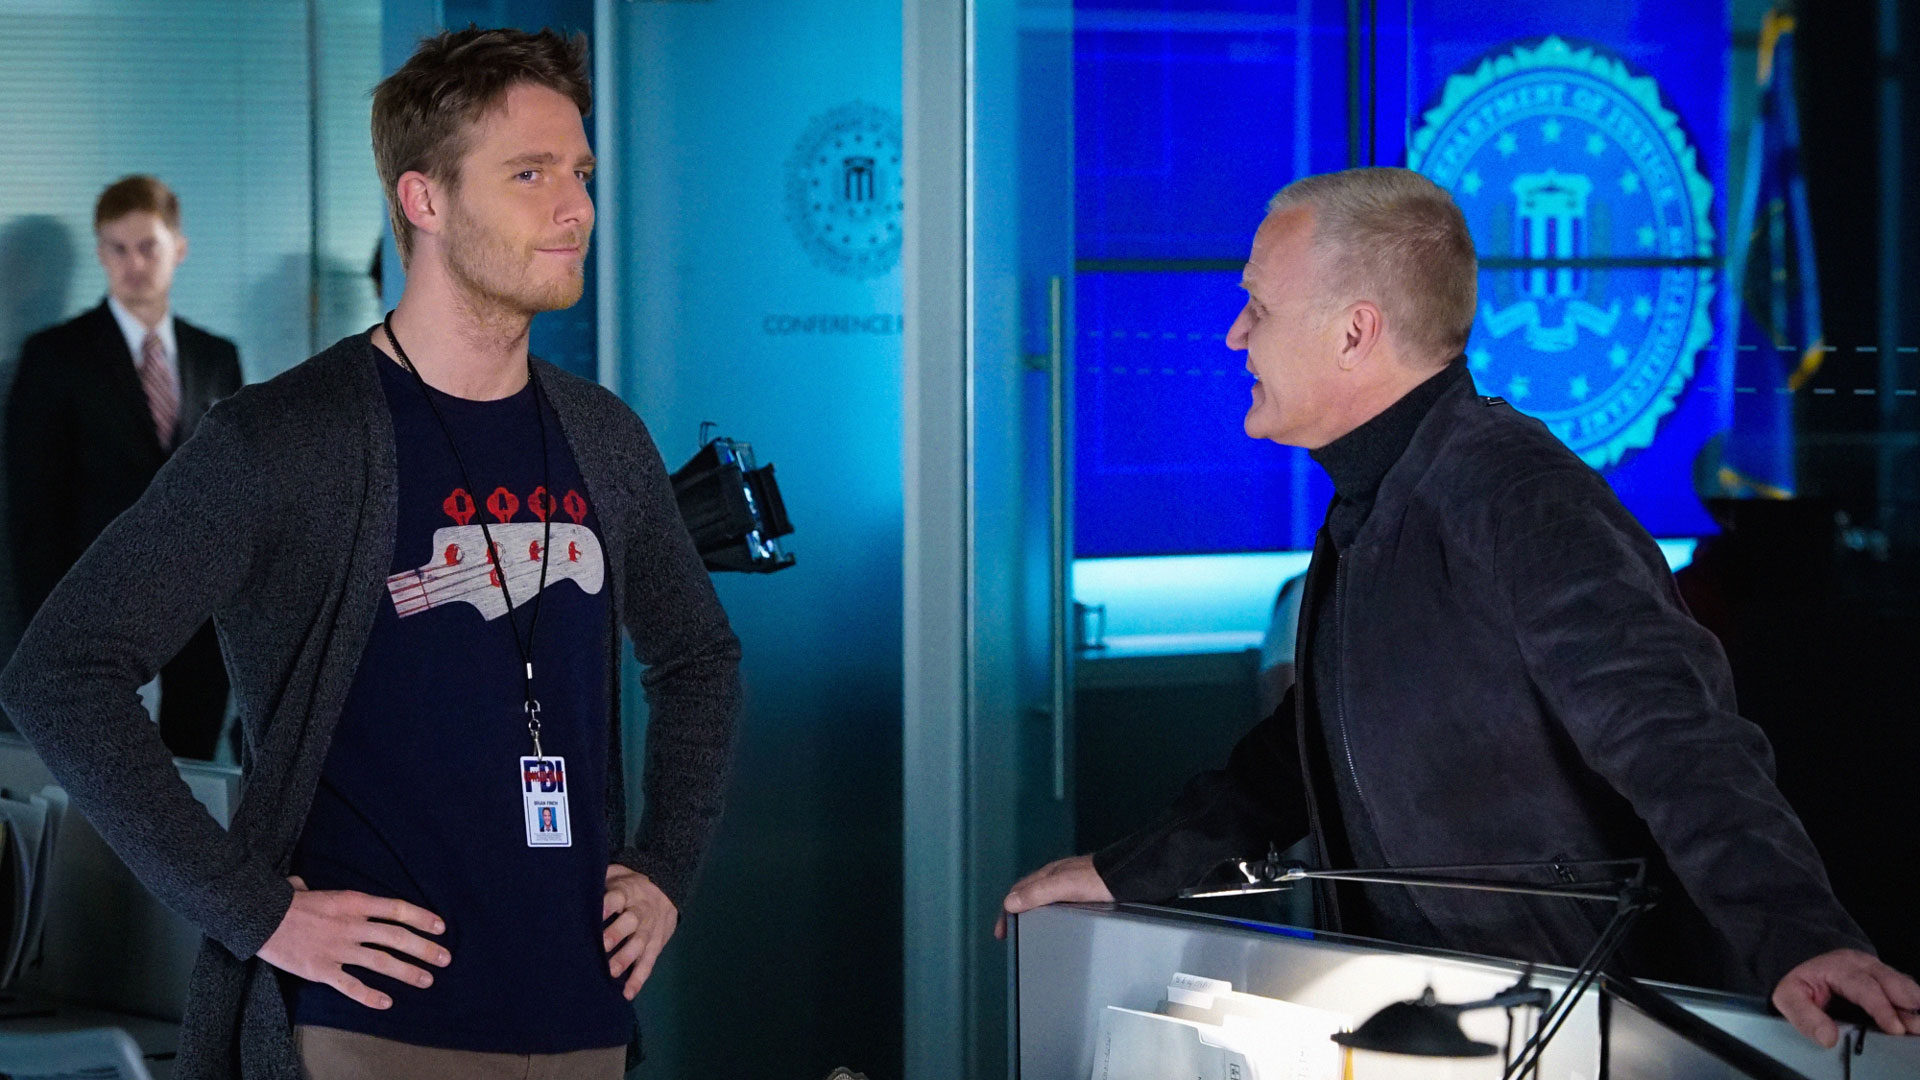 Jake McDorman as Brian Finch and Terry Serpico as David Englander